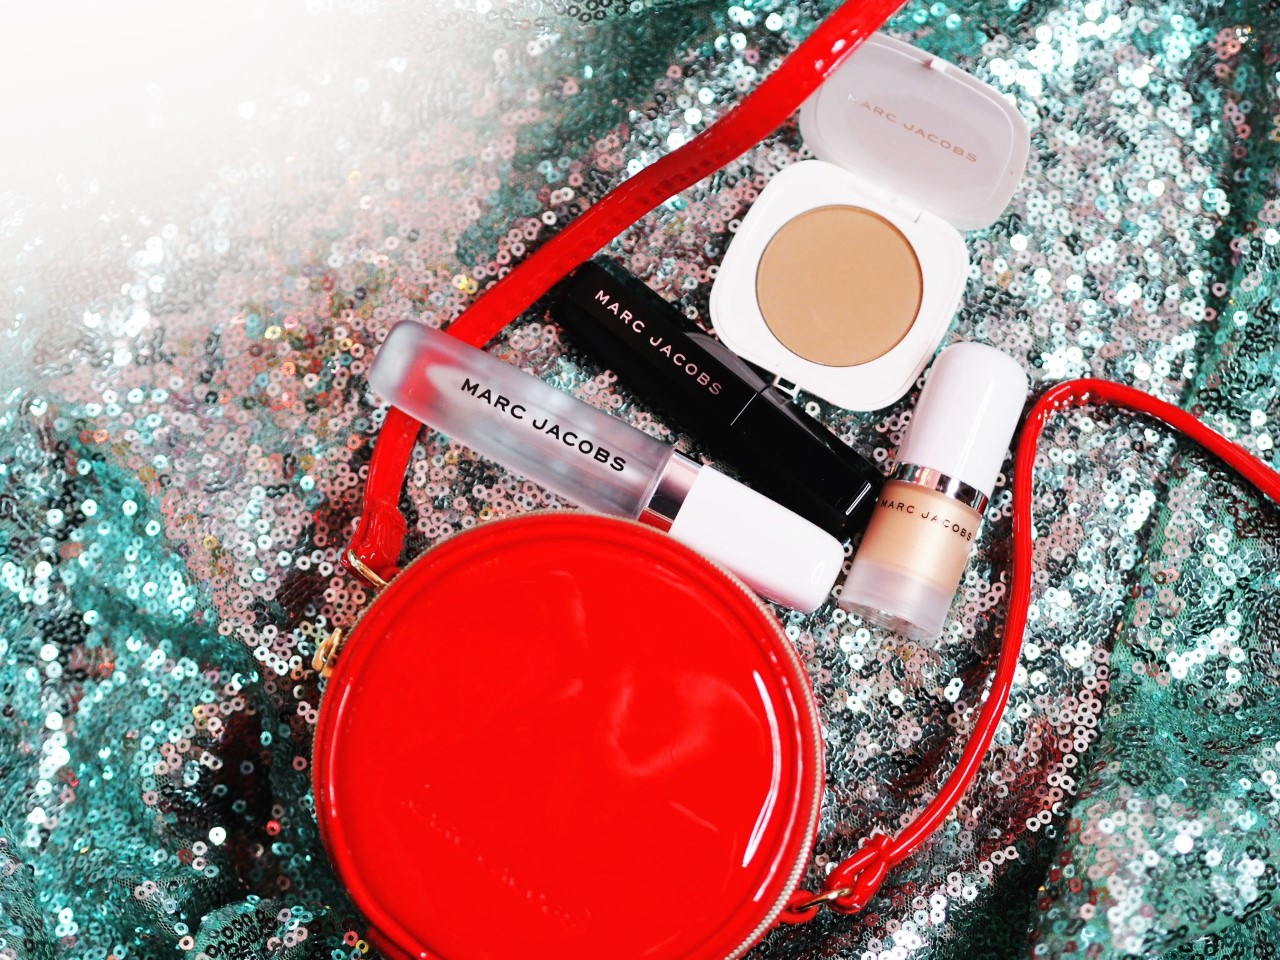 OUT NOW! Marc Jacobs Black Friday Make-Up Set!!